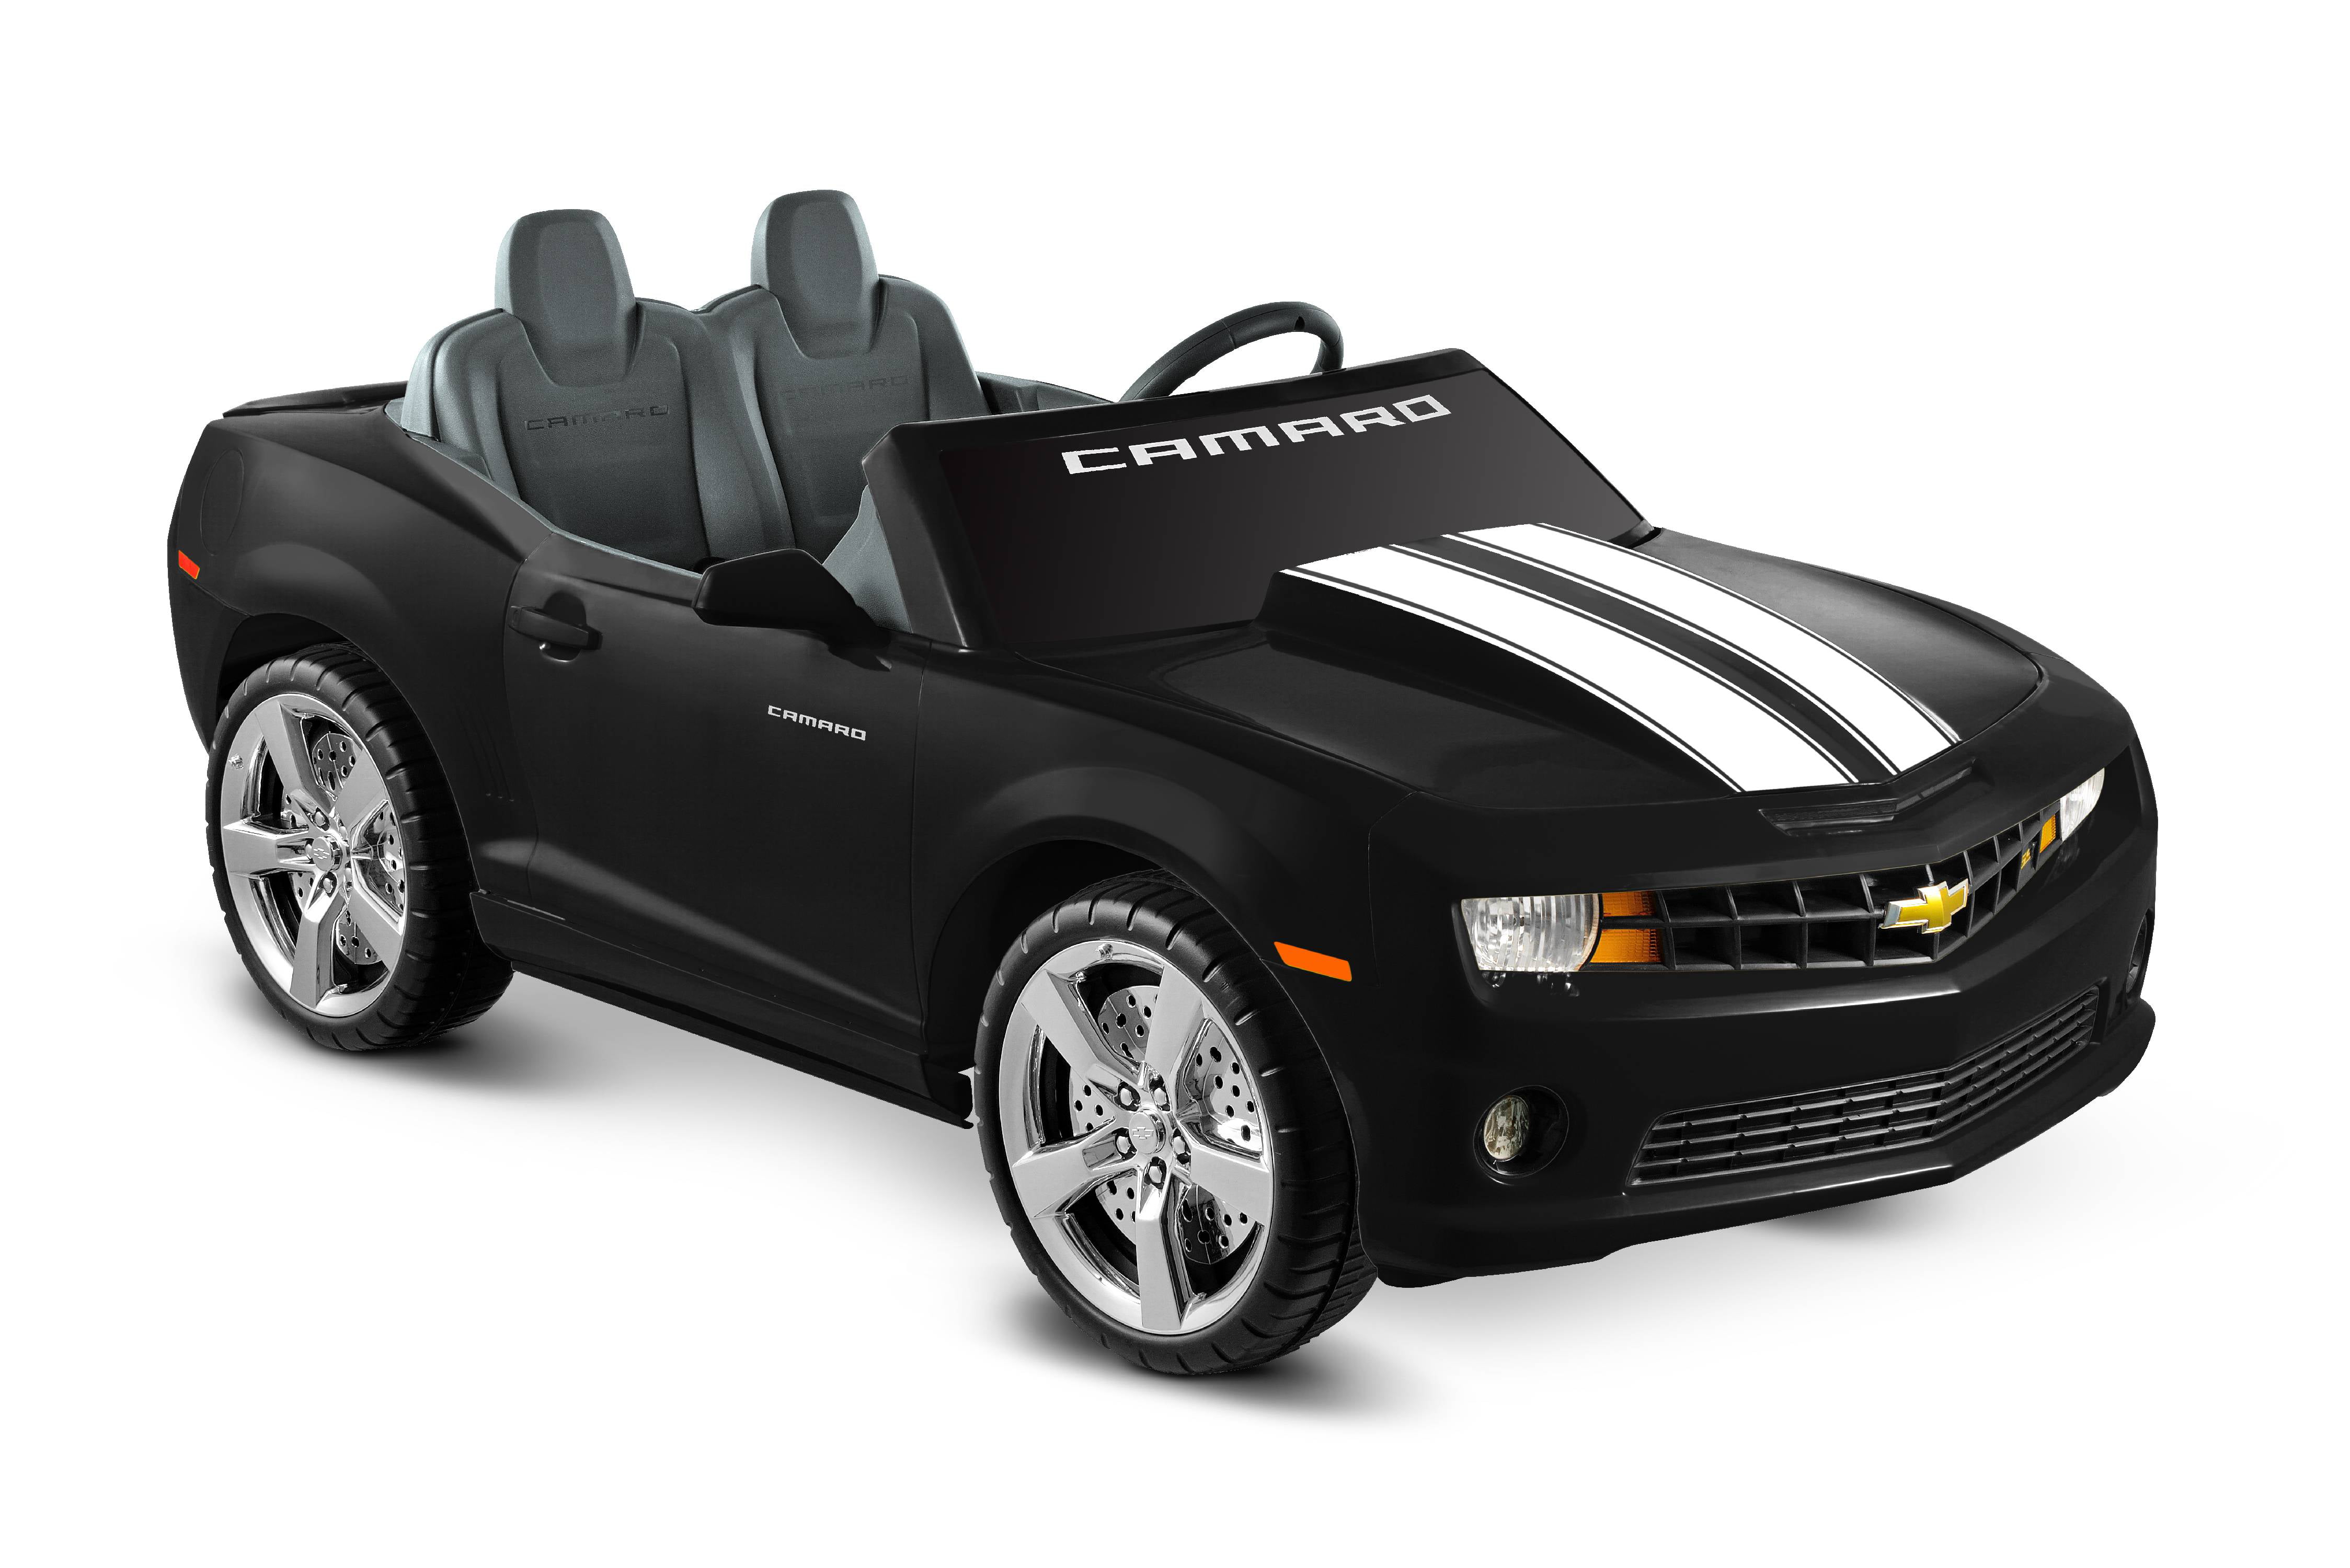 Kid Motorz Chevrolet Camaro 12-Volt Battery-Operated Ride-On, Black with Racing Stripes by National Products Limited